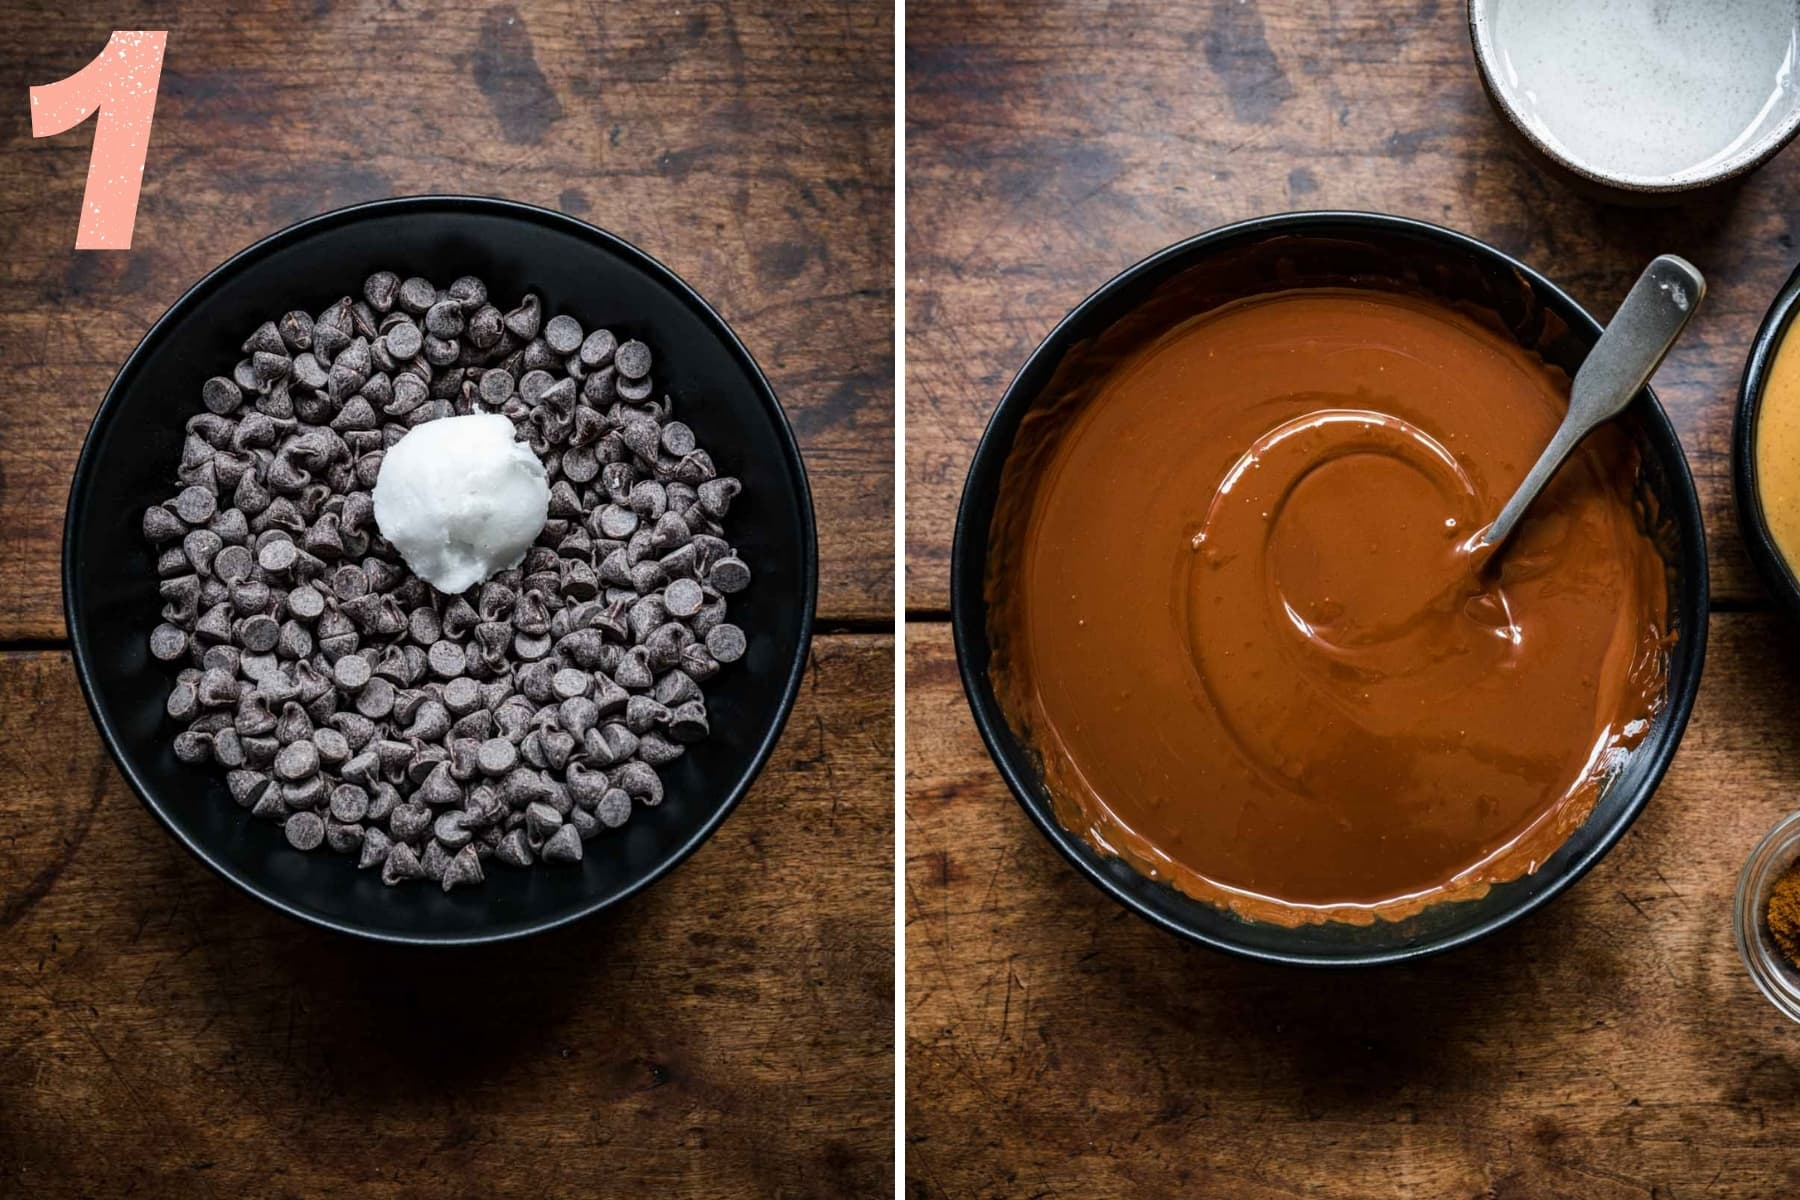 before and after melting dark chocolate chips with a small amount of coconut oil.